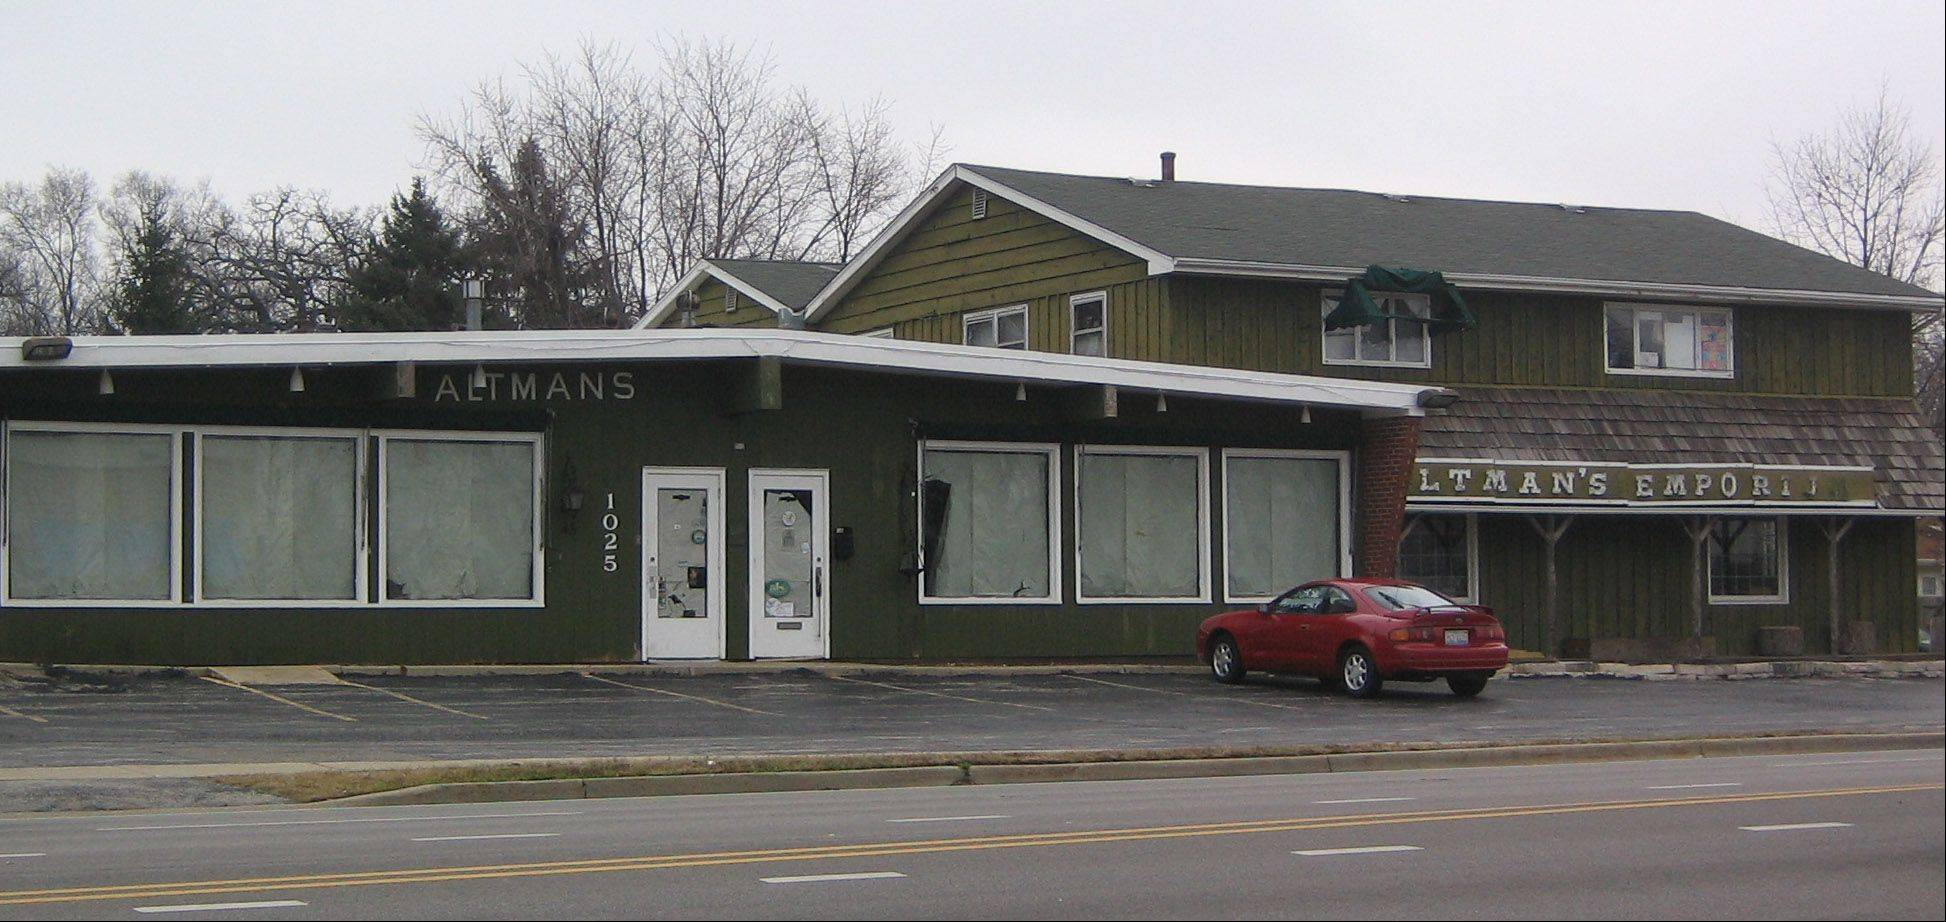 Round Lake Beach trustees say they will work with a former Golden Gloves boxer on a proposal to open a boxing club the former Altman�s Emporium on Cedar Lake Road.